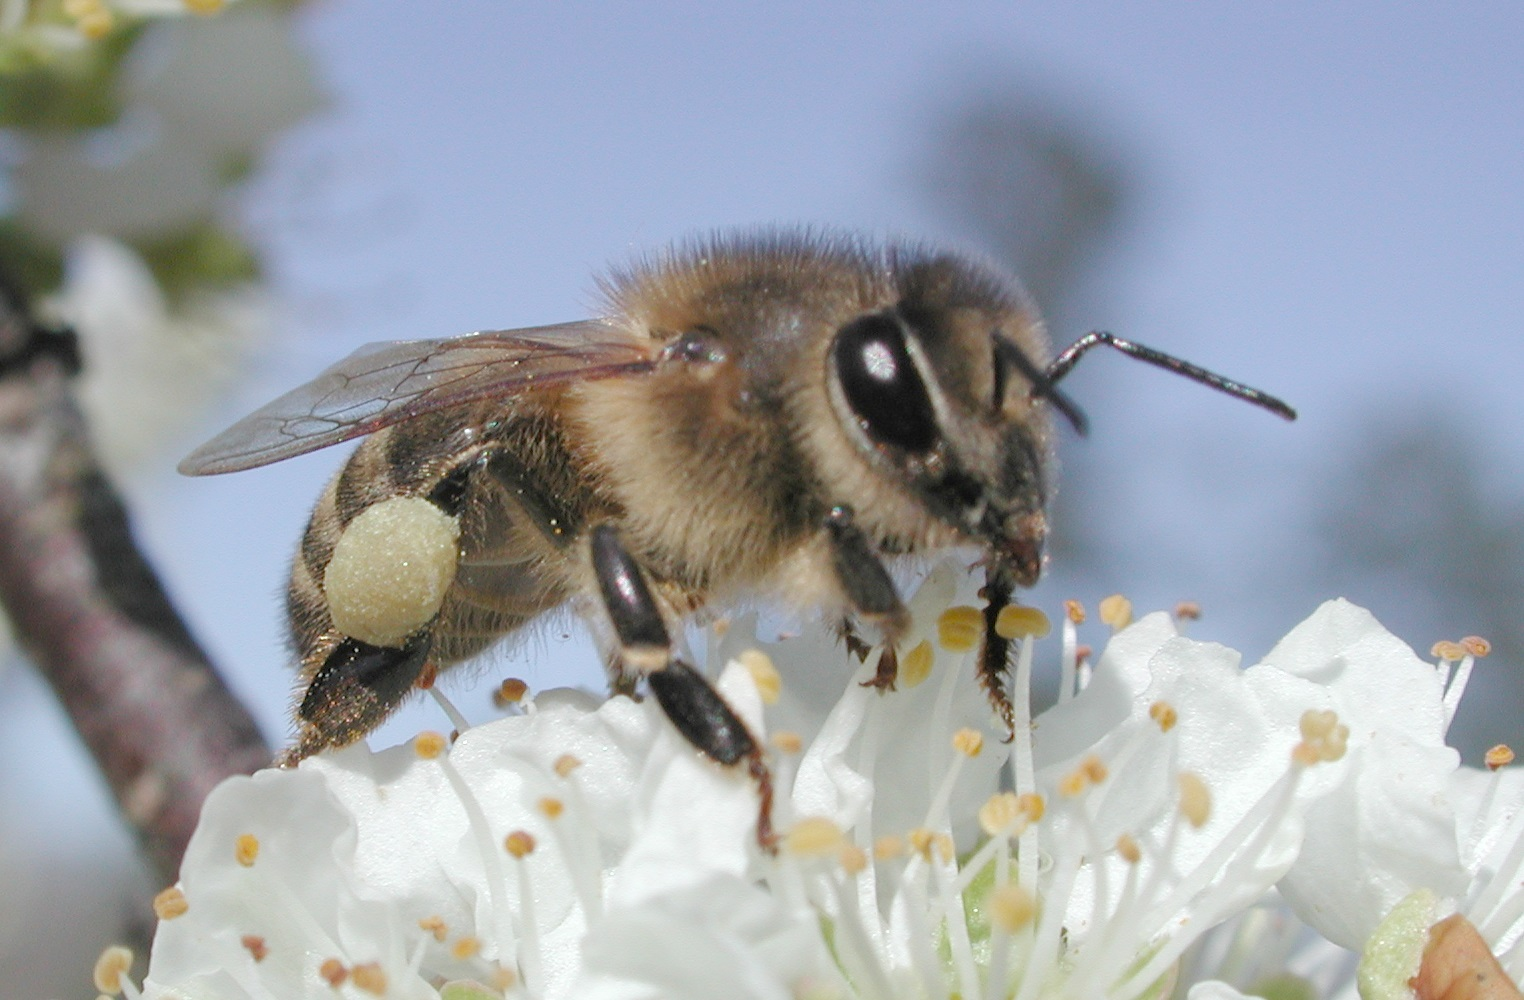 Honeybees are affected by a banned EU pesticide... but their counterparts, bumblebees, are not